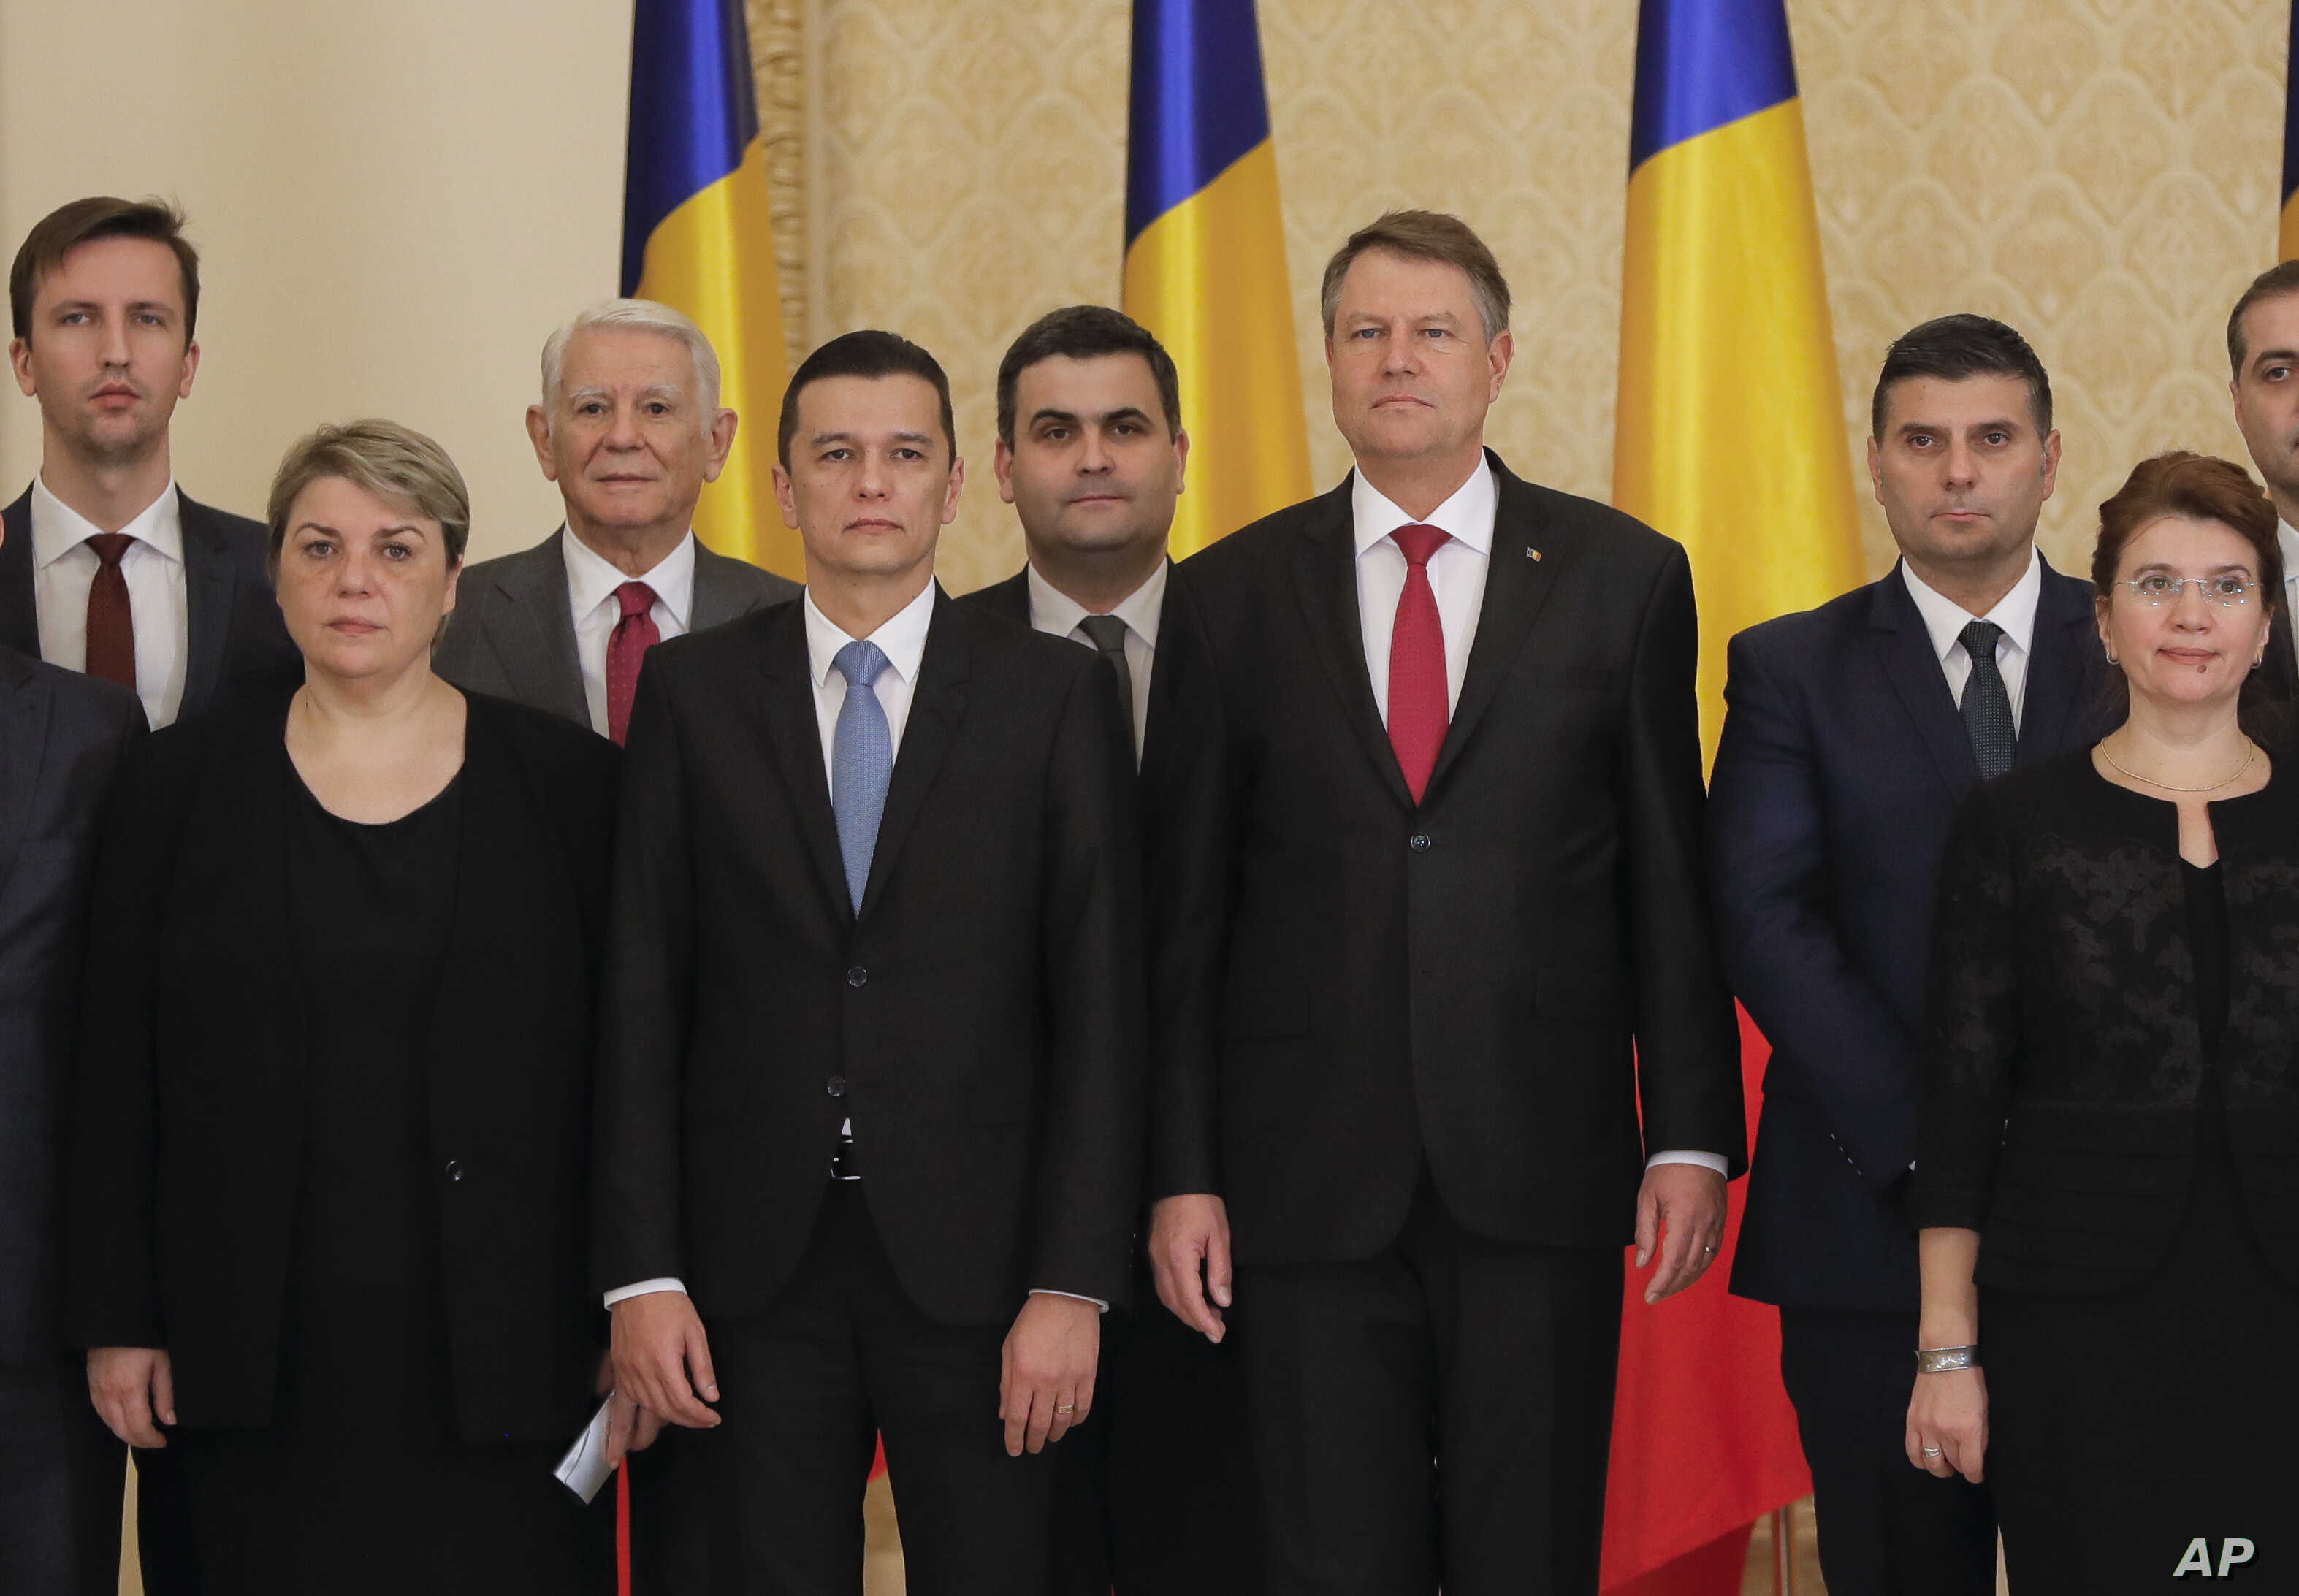 Romanian Prime Minister Sorin Grindeanu, center left, poses for the media next to Romanian President Klaus Iohannis after the swearing in ceremony for his cabinet, in Bucharest, Romania, Jan. 4, 2017.